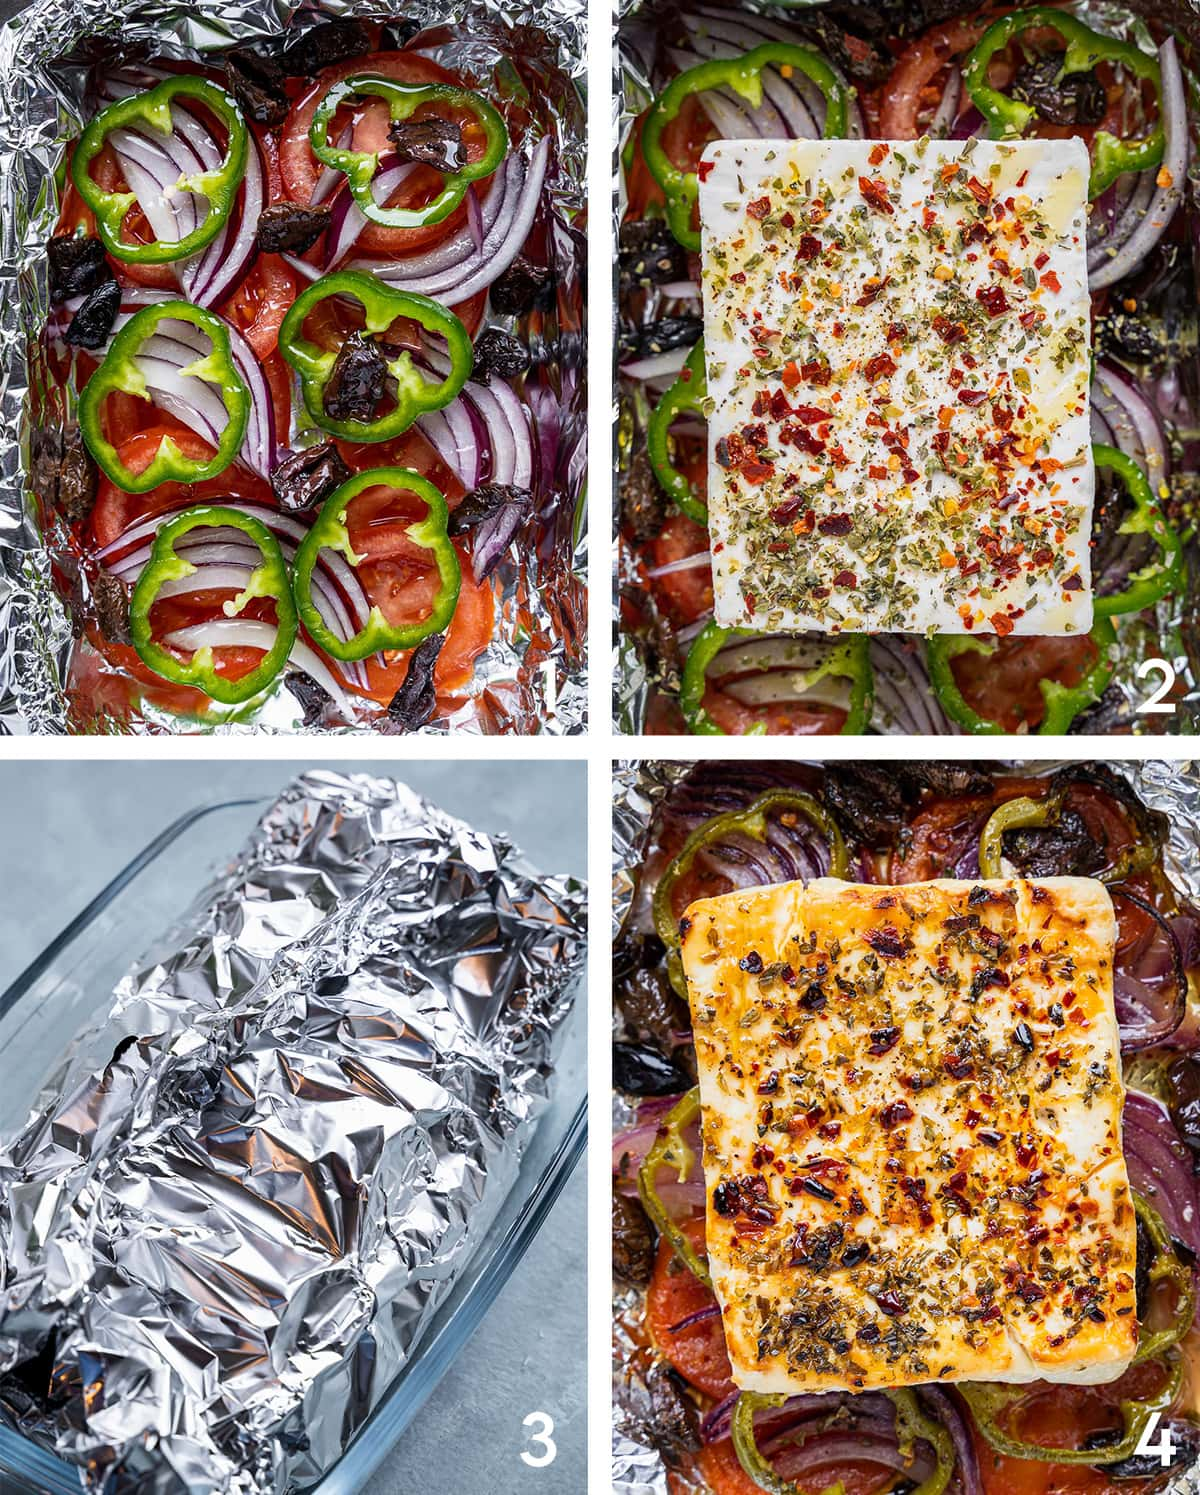 Spicy Baked Feta steps